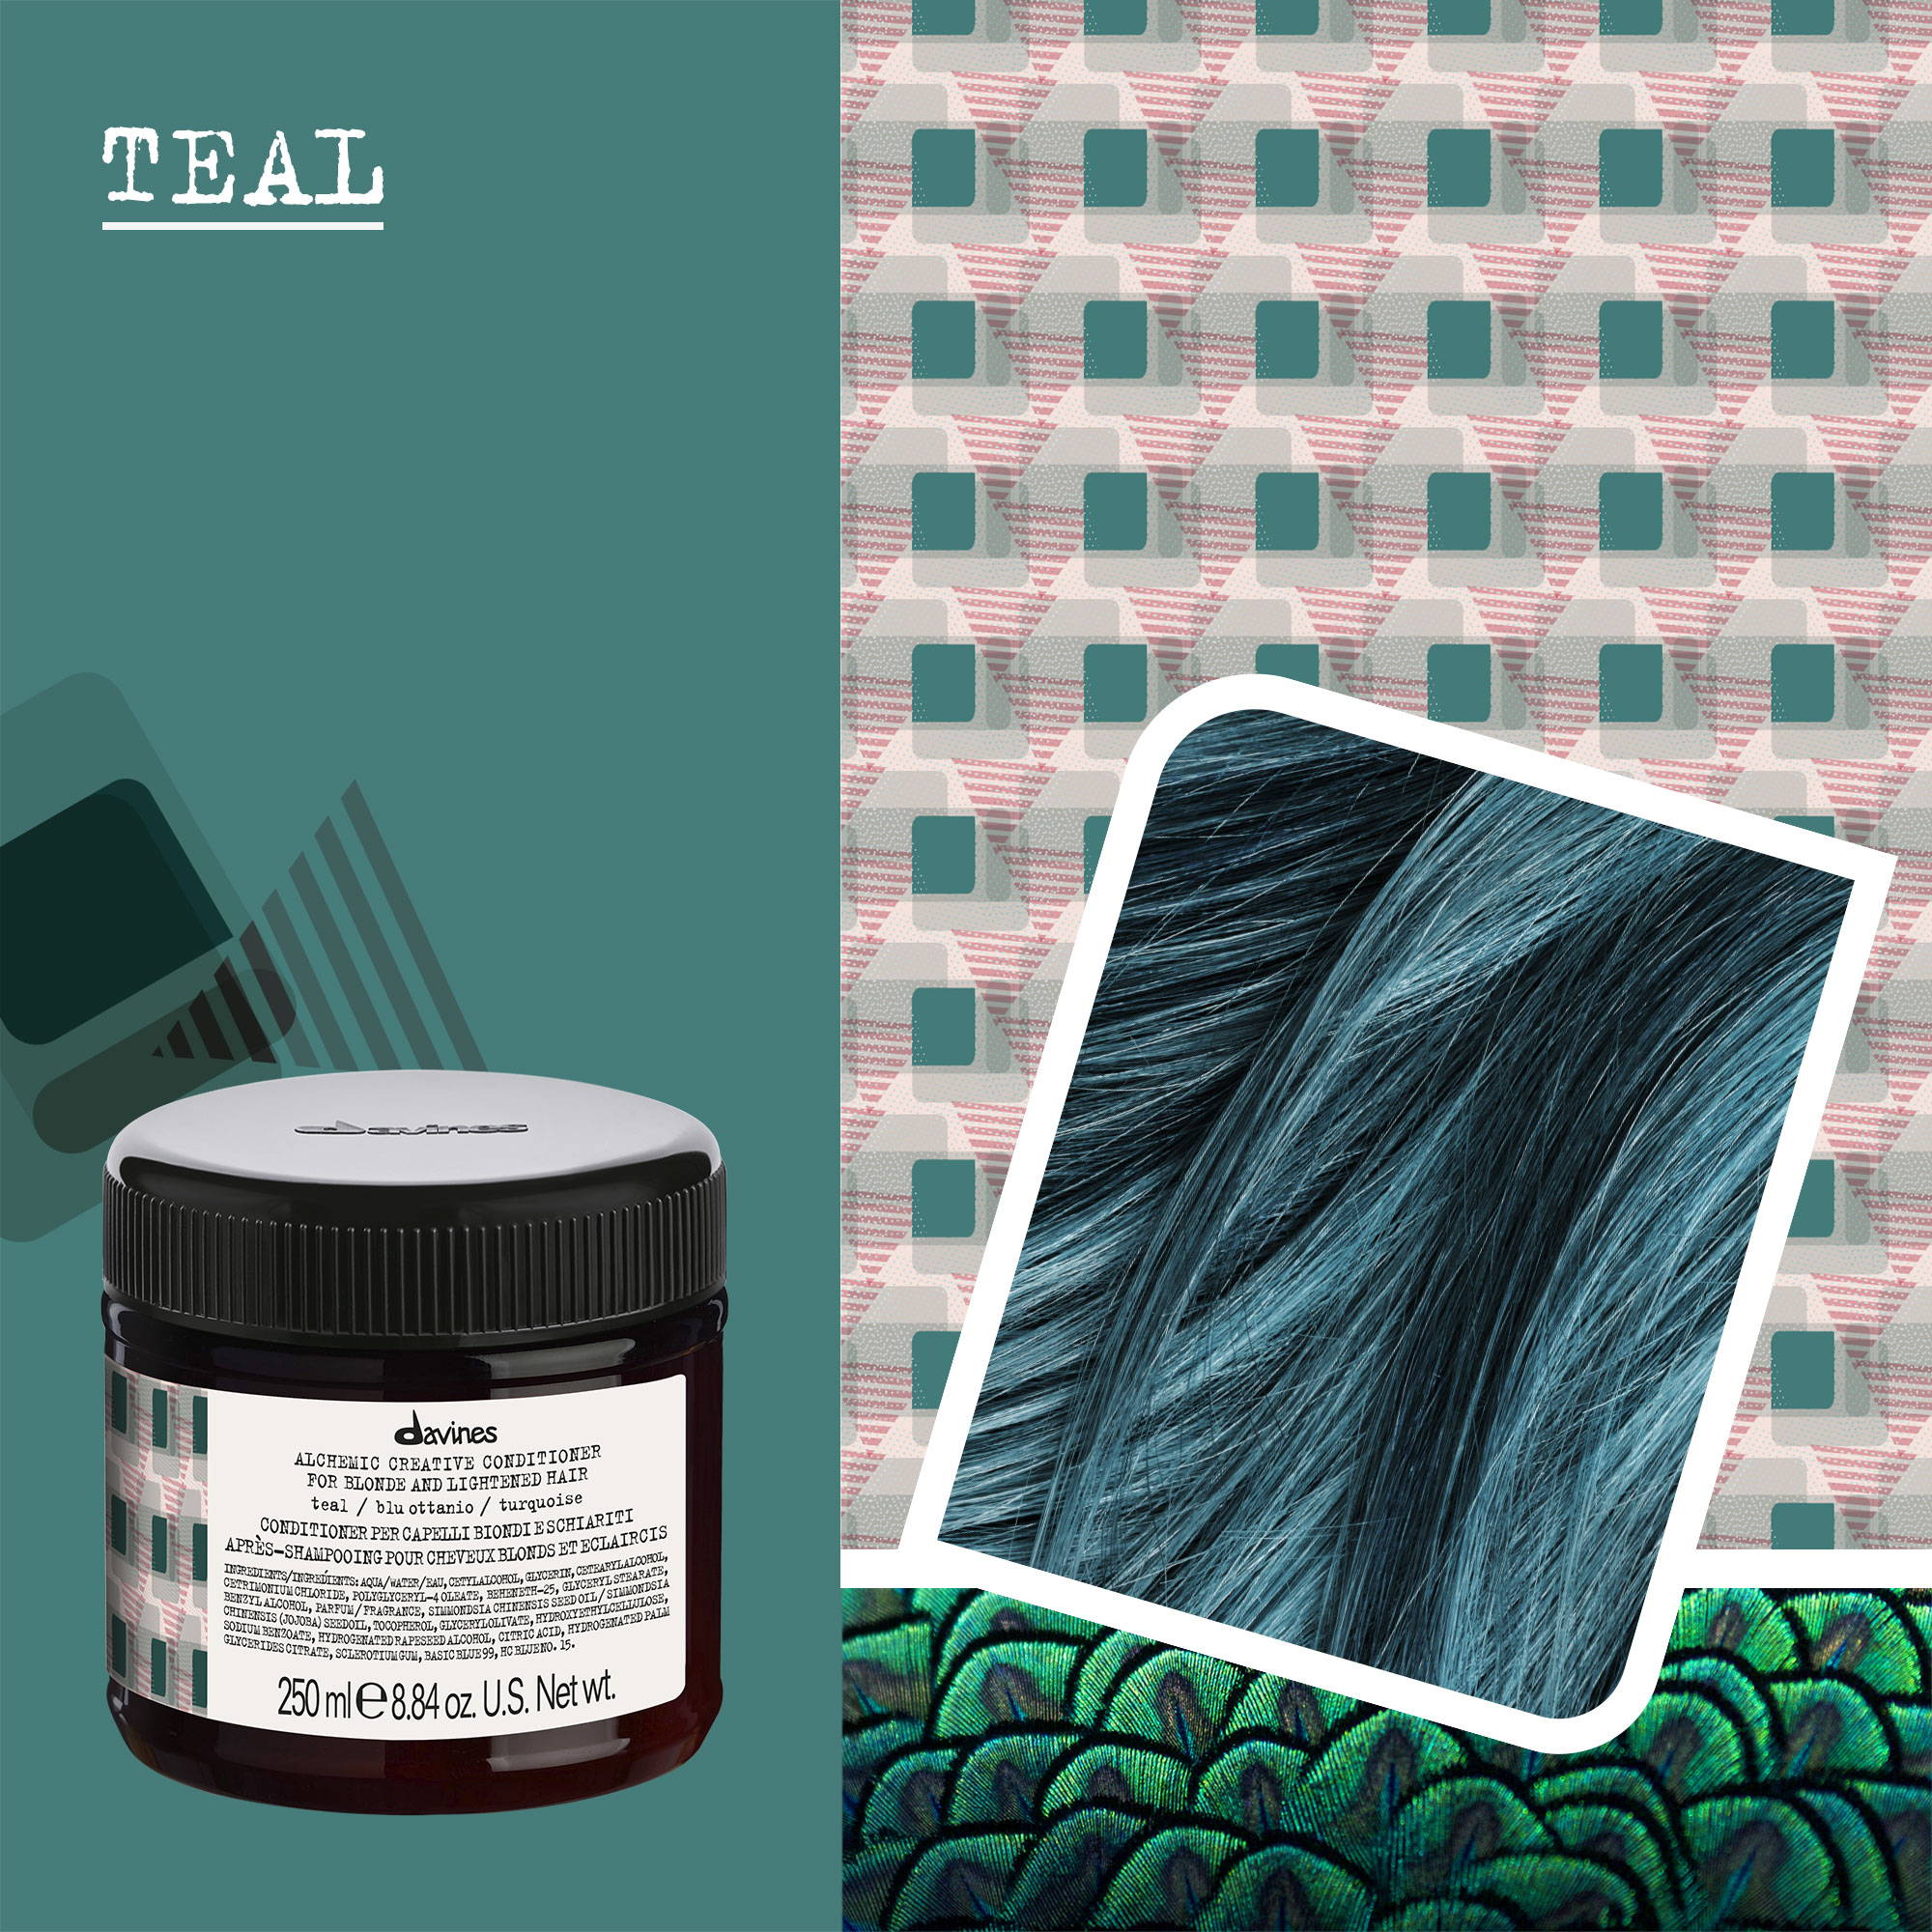 Teal Alchemic Creative Conditioner